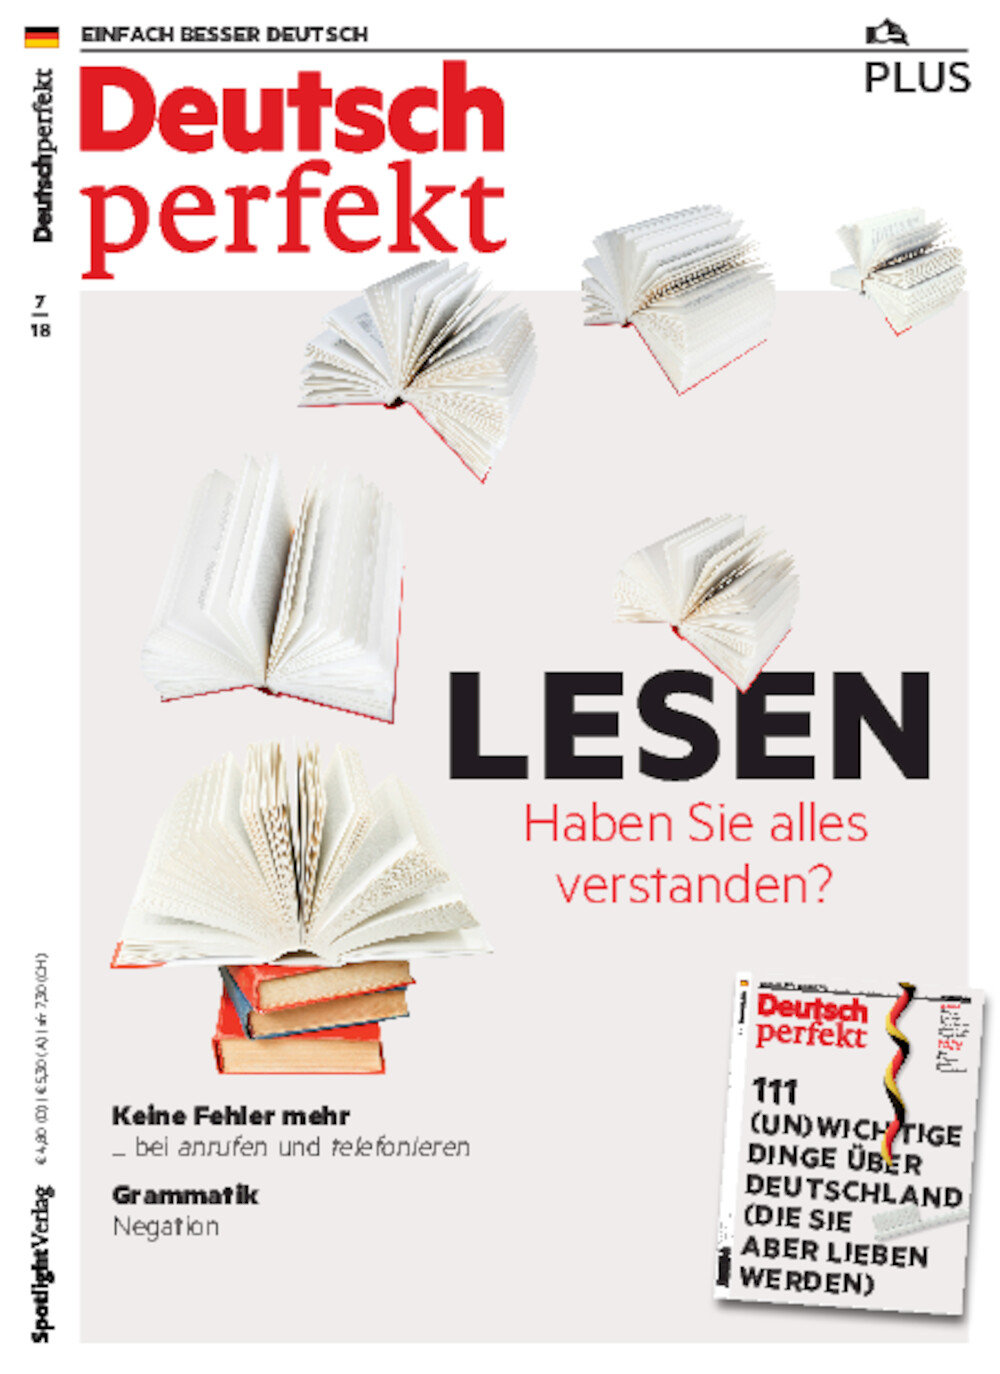 Deutsch perfekt PLUS 07/2018